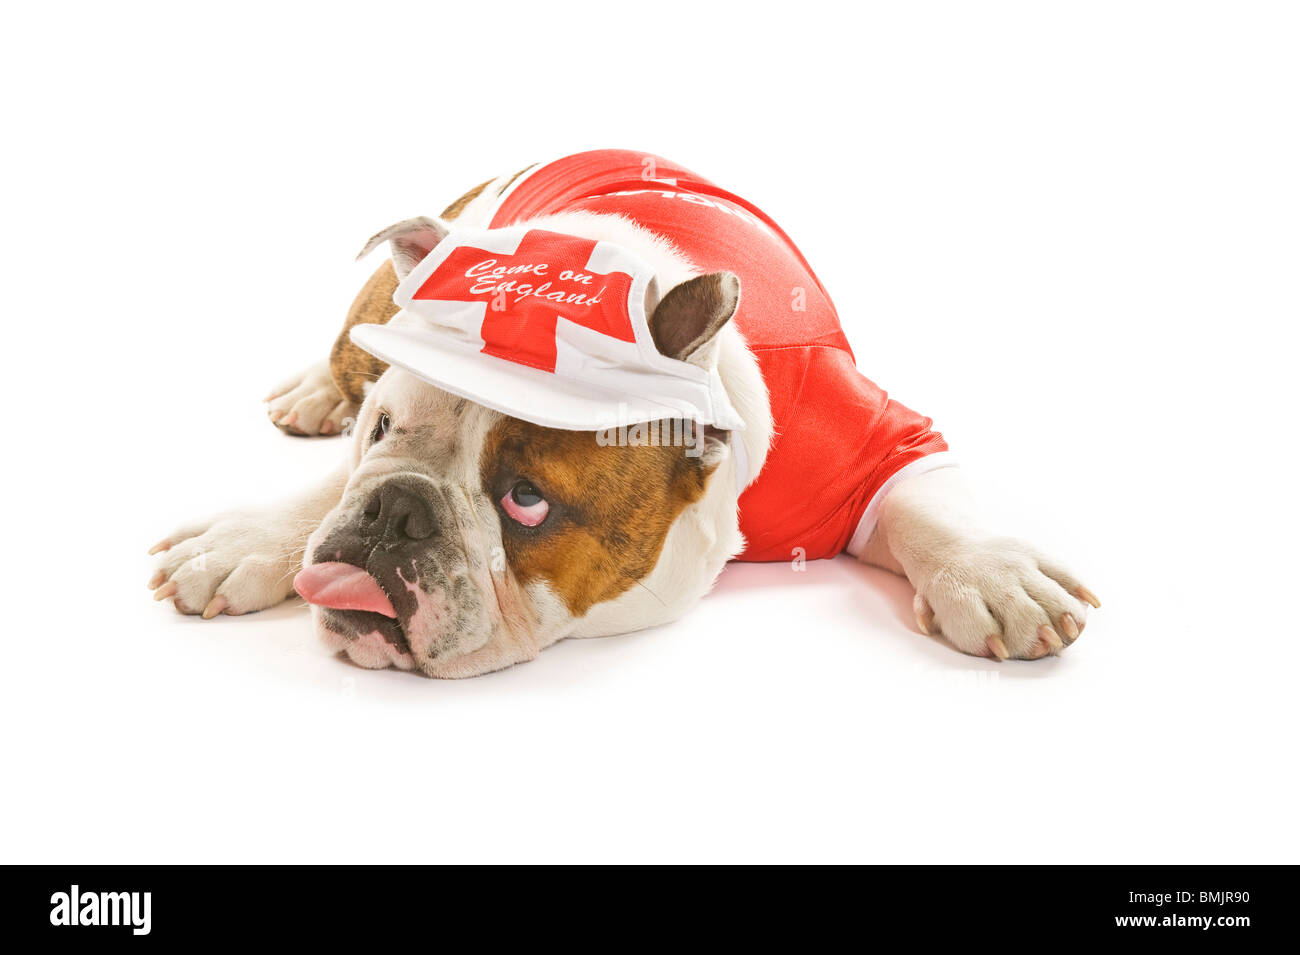 A British Bulldog lying down wearing an England team football shirt and cap against a white background looking quite - Stock Image